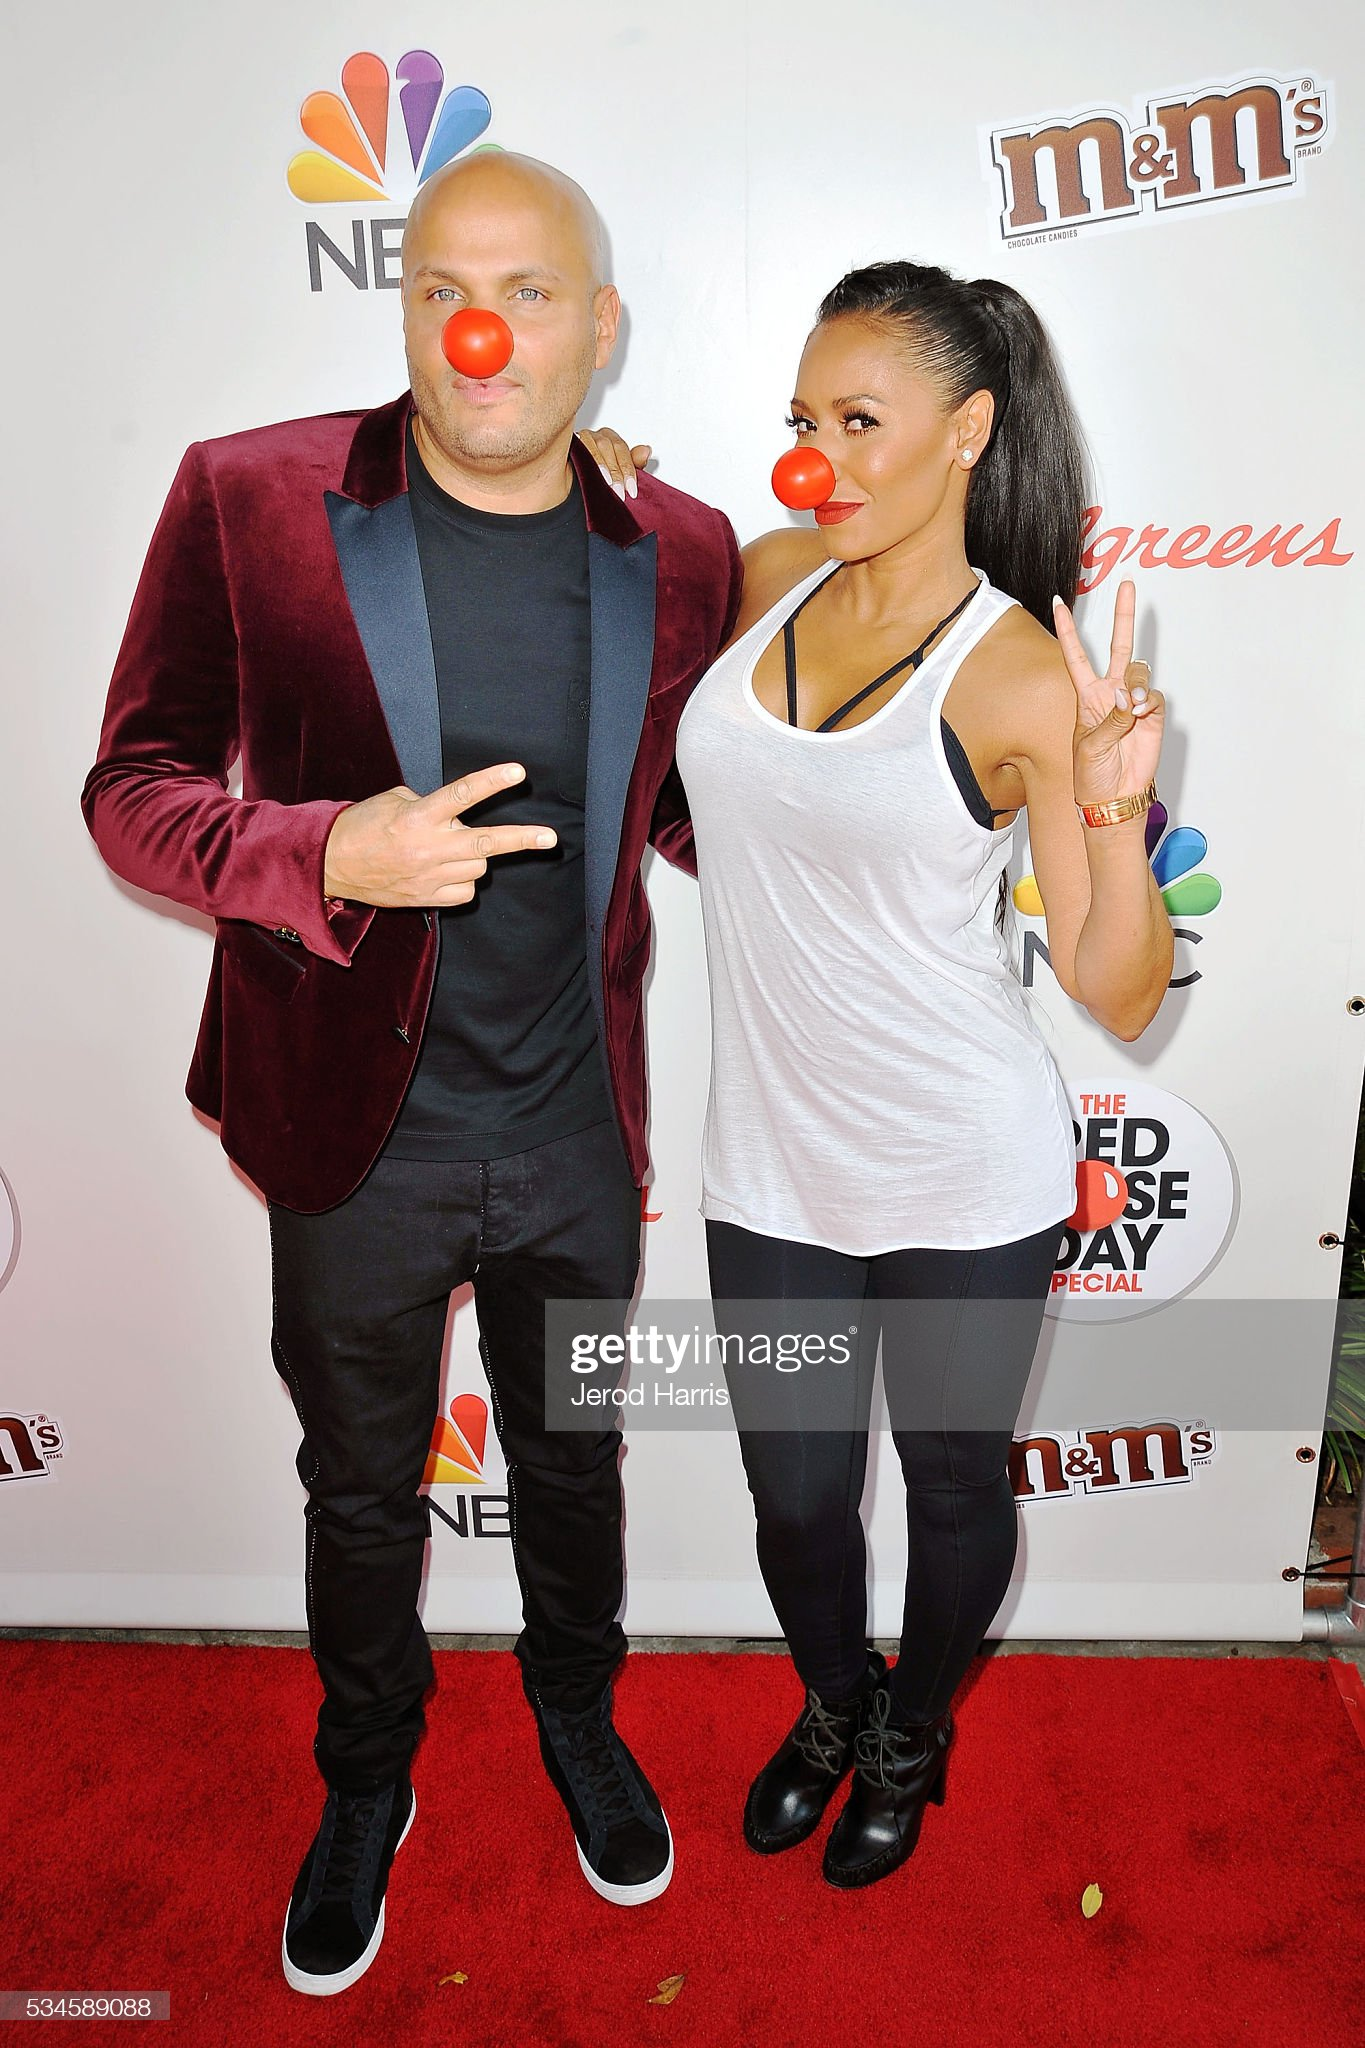 ¿Cuánto mide Stephen Belafonte? - Altura - Real height Stephen-belafonte-and-mel-b-attend-the-red-nose-day-special-on-nbc-at-picture-id534589088?s=2048x2048